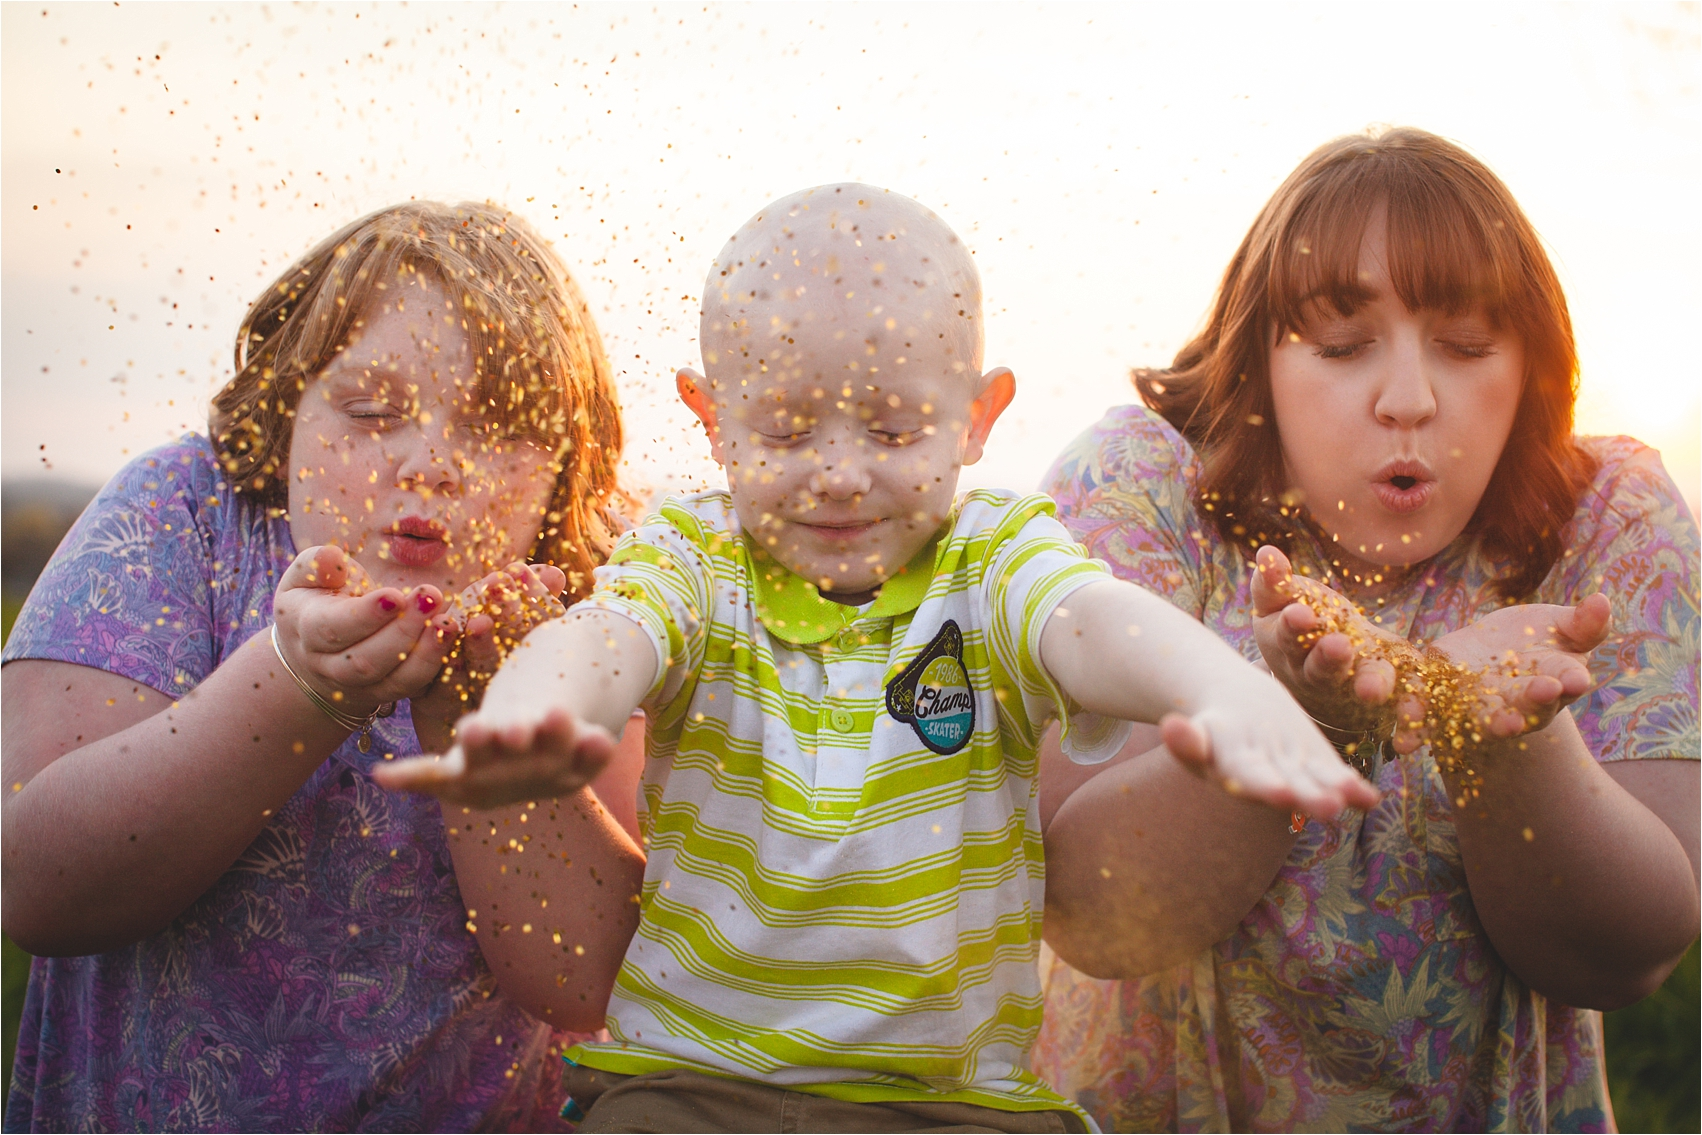 Photo sessions cancer patients siblings with glitter photo by The Gold Hope Project